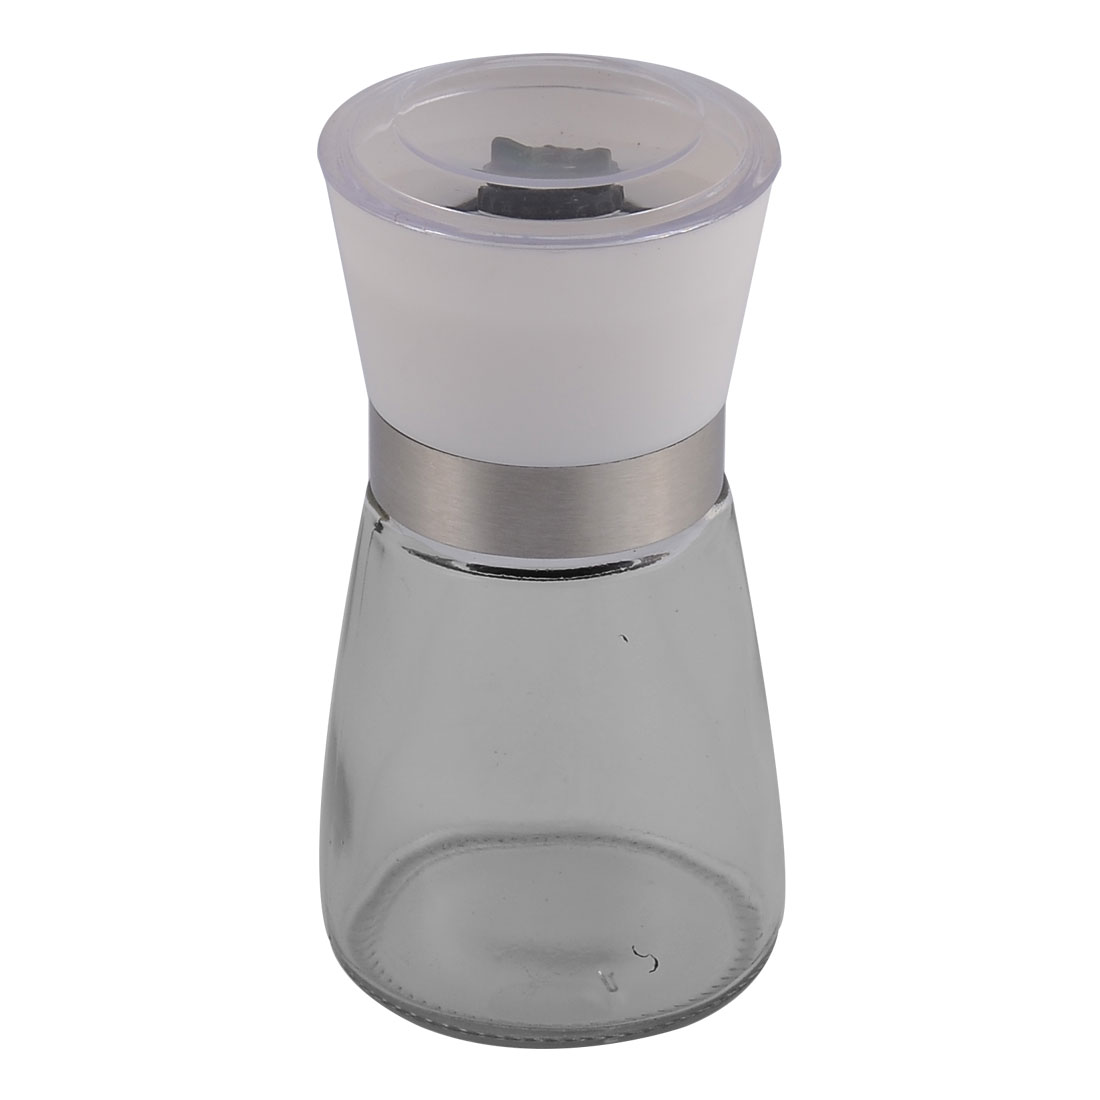 Household Kitchen Glass Handheld Spice Salt Pepper Mill Grinder Shaker Container Pot